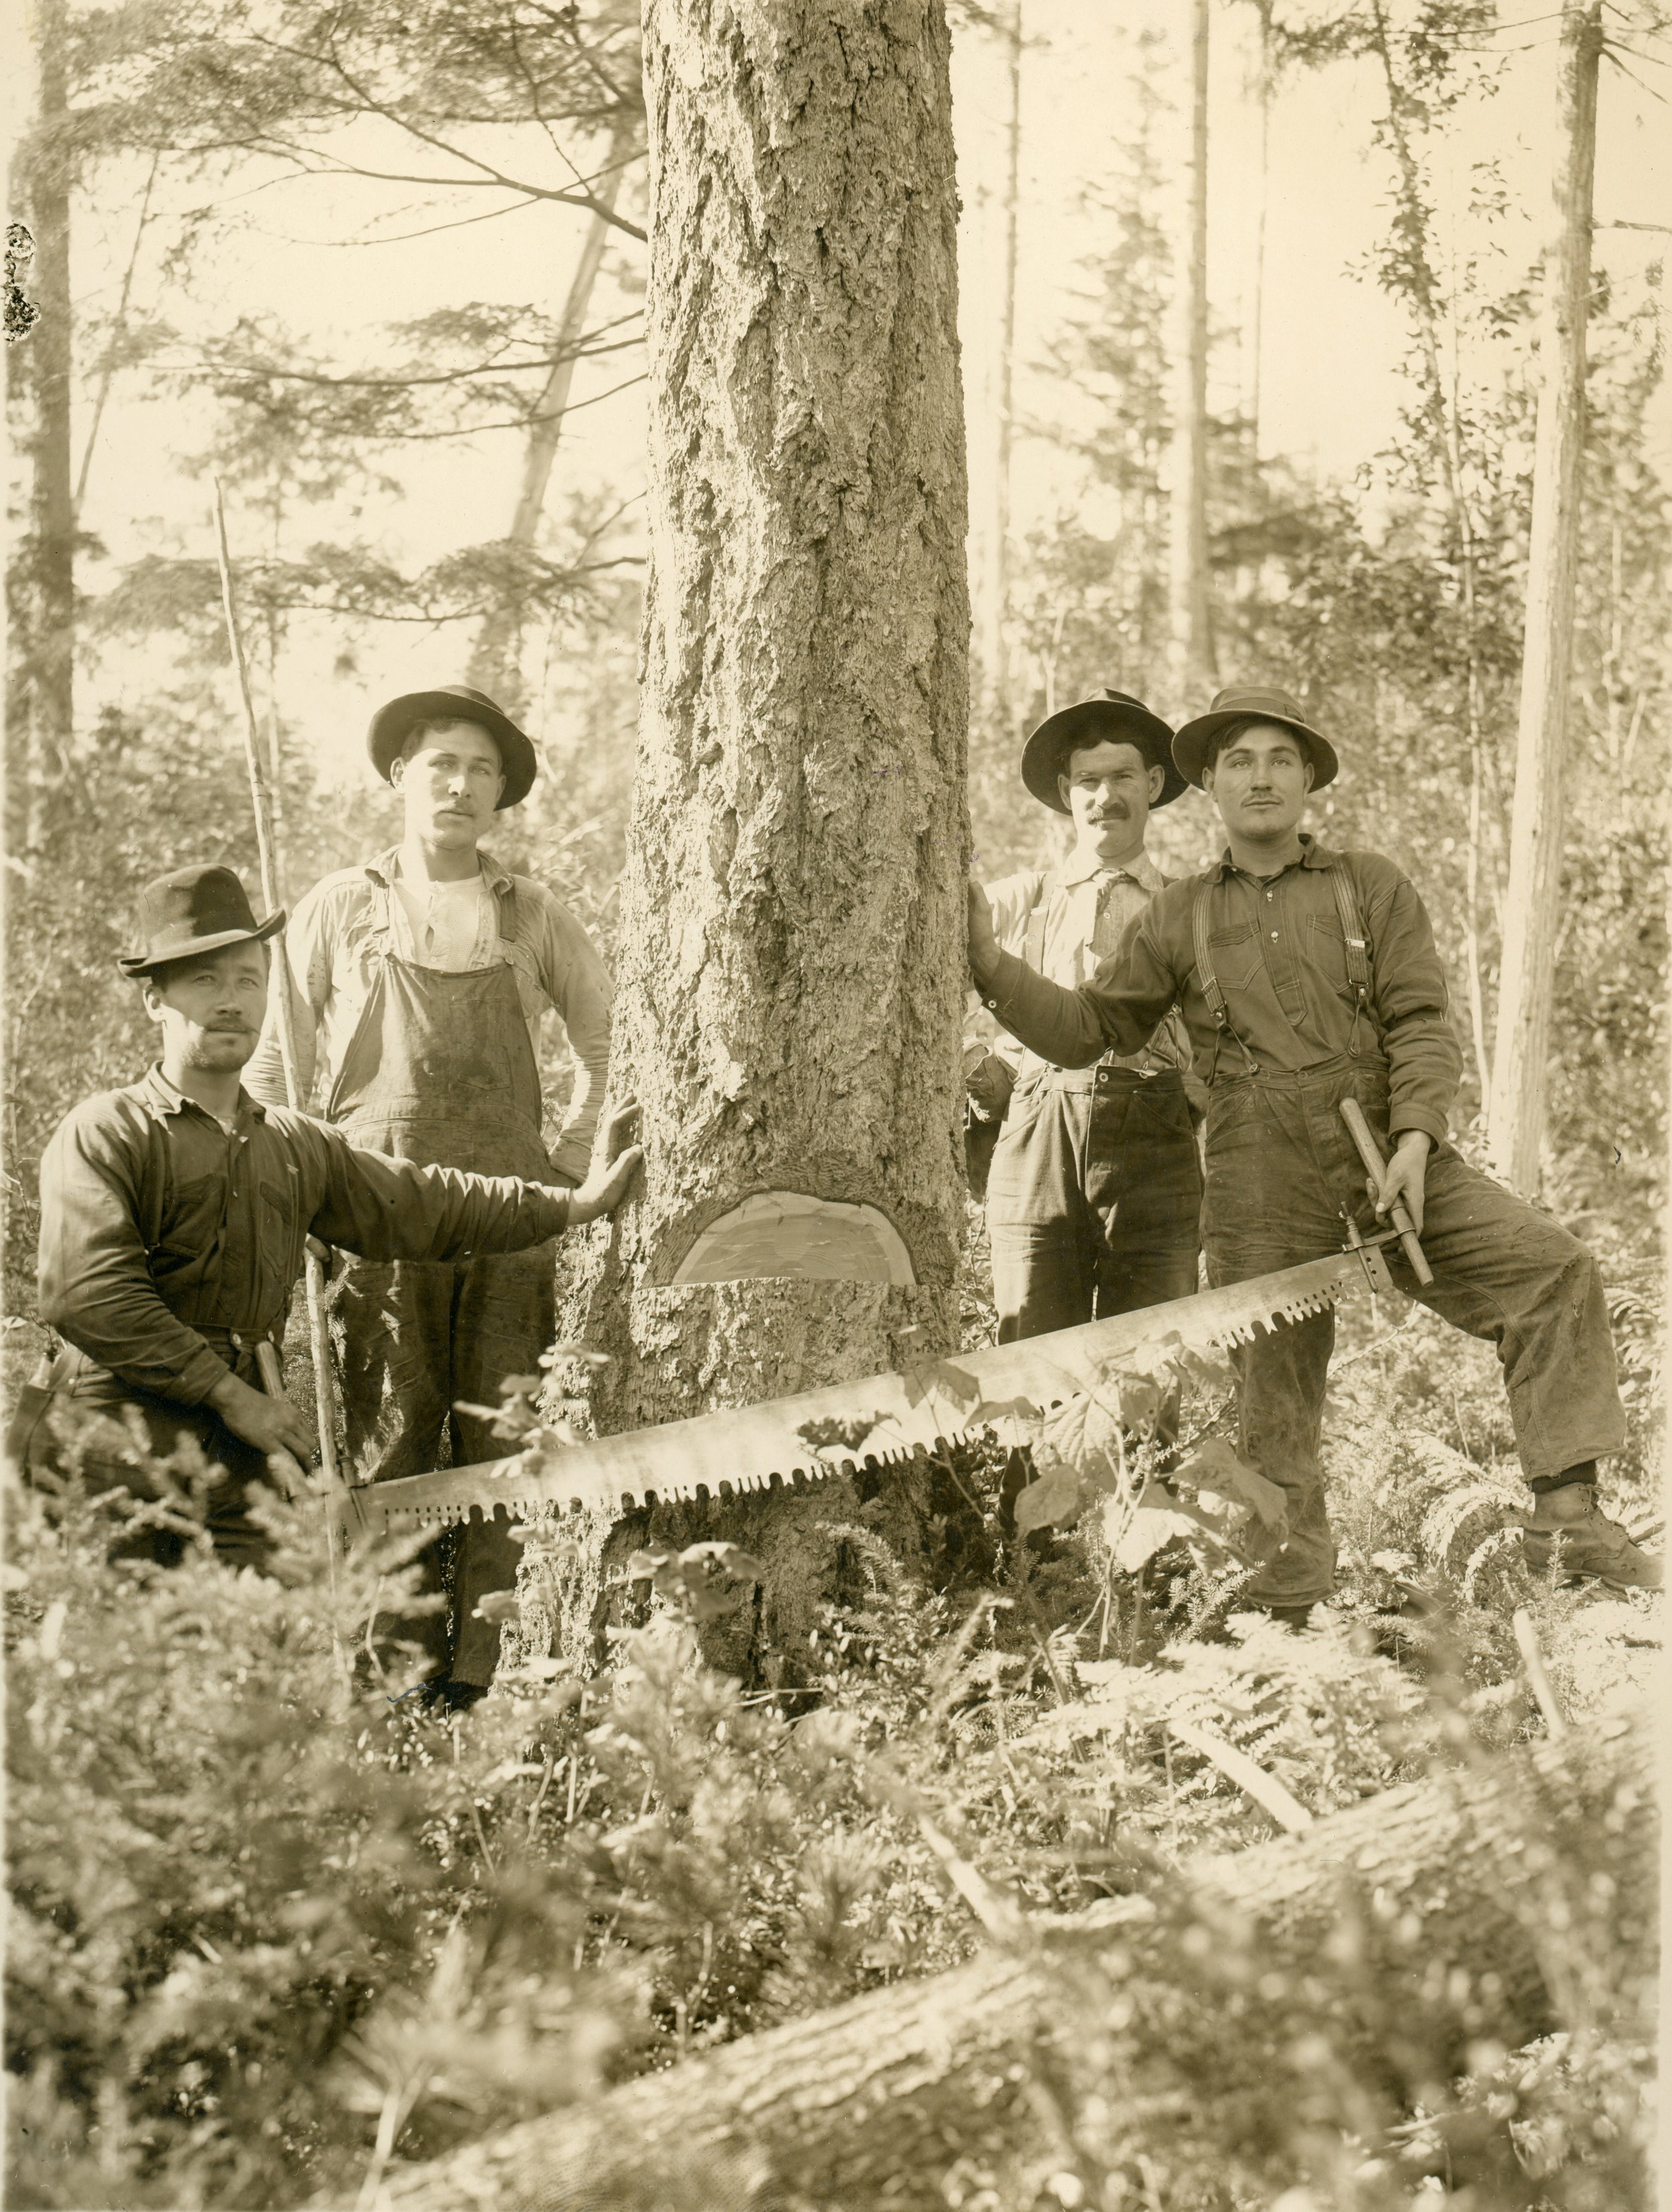 Photo 2309.0158: Logging crew from the Deschamps Mill, circa 1910. Names unknown.